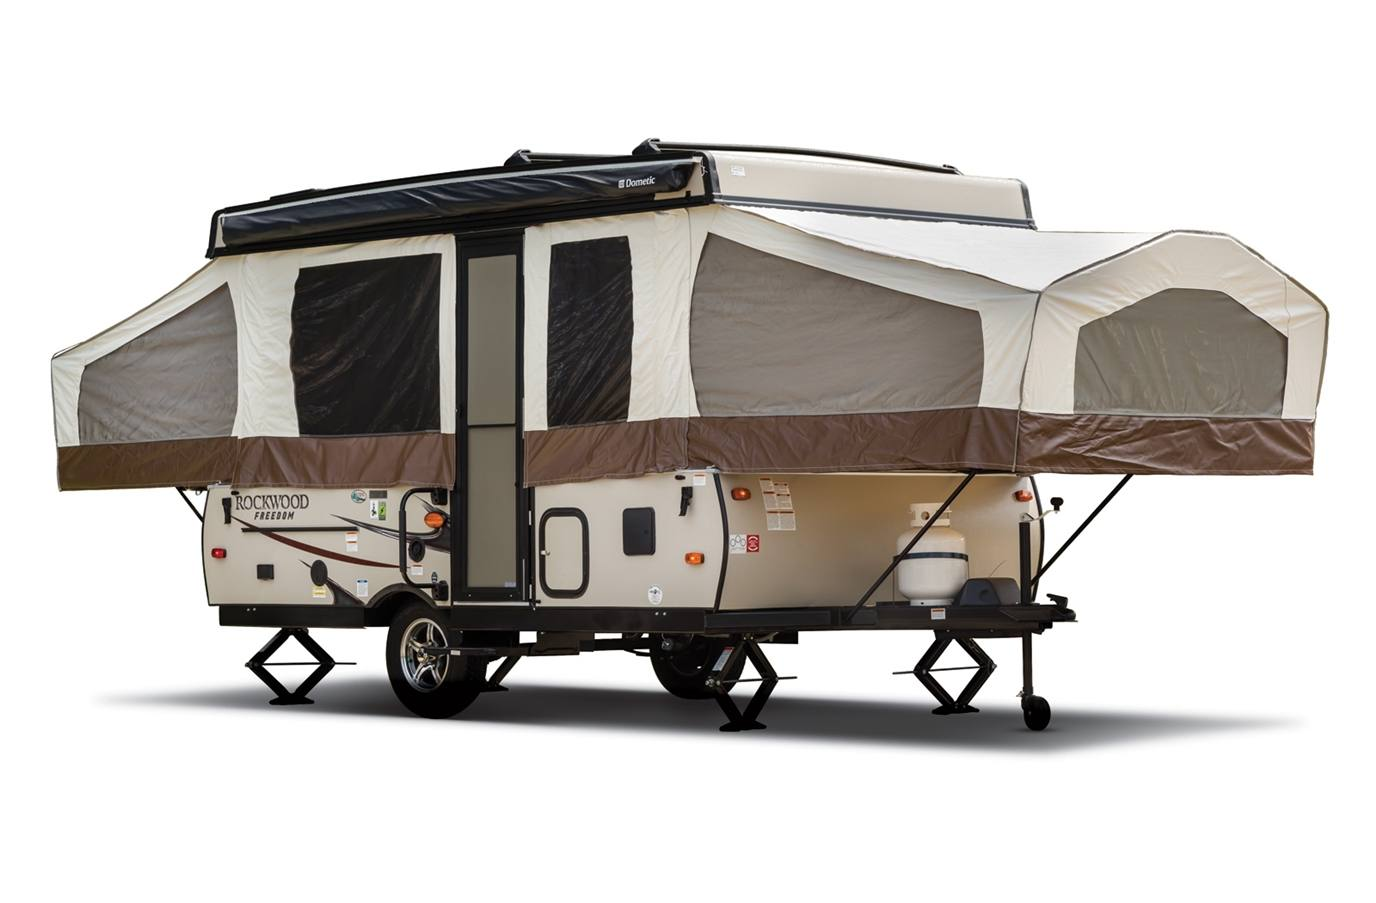 2018 Rockwood By Forest River 2318g Freedom Series For Sale In Niles Pop Up Camper Wiring Diagram Previous